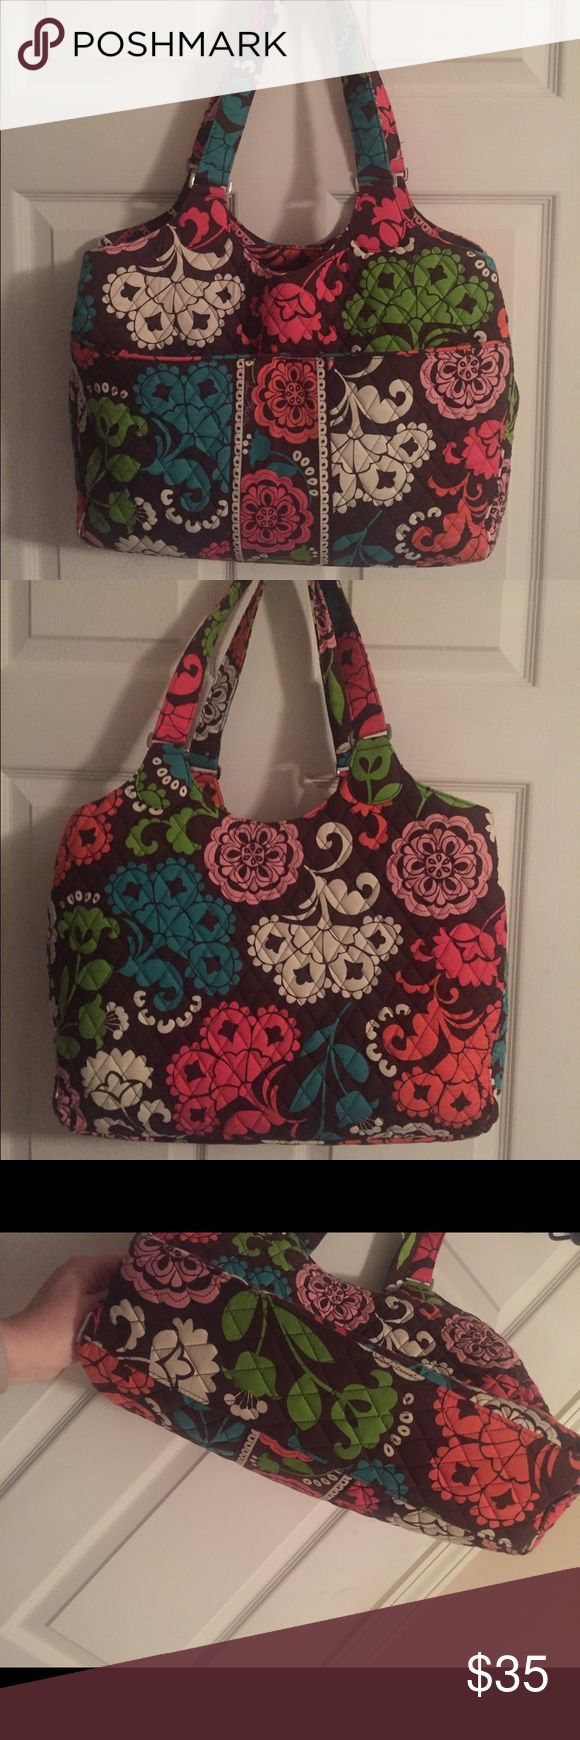 Vera Bradley Laptop Bag Vera Bradley Laptop bag. Has two pockets on the front. Three inside pockets. One padded pocket with zipper top for a laptop, large middle pocket with zipper top, and another with pockets on the inside. Great for school or work! Vera Bradley Bags Laptop Bags